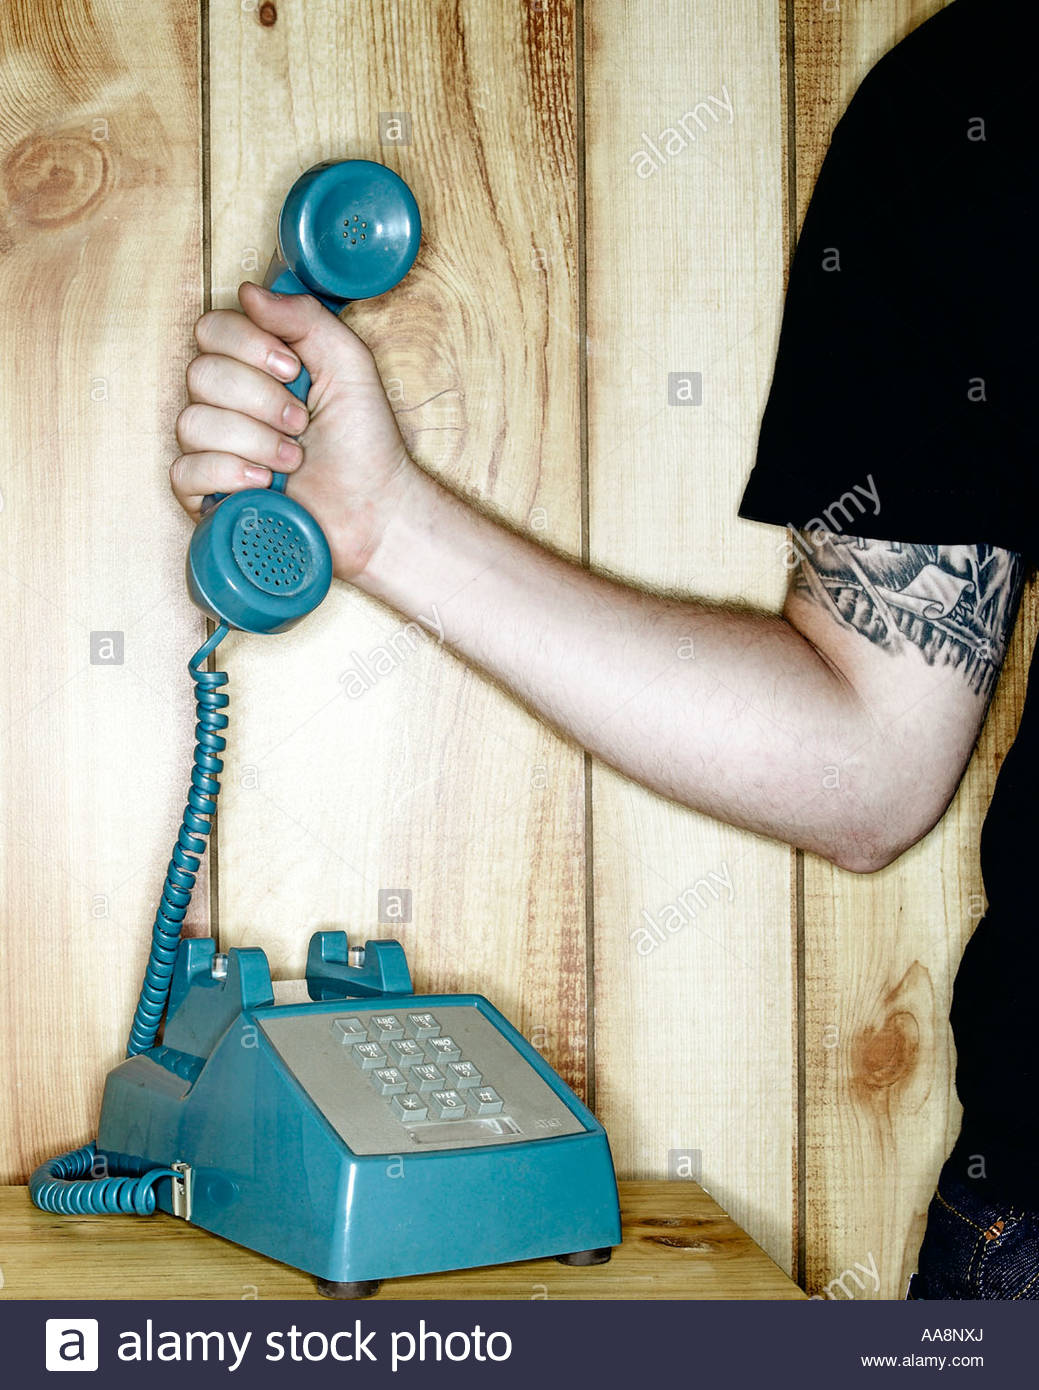 Hand holding old-fashioned phone receiver - Stock Image